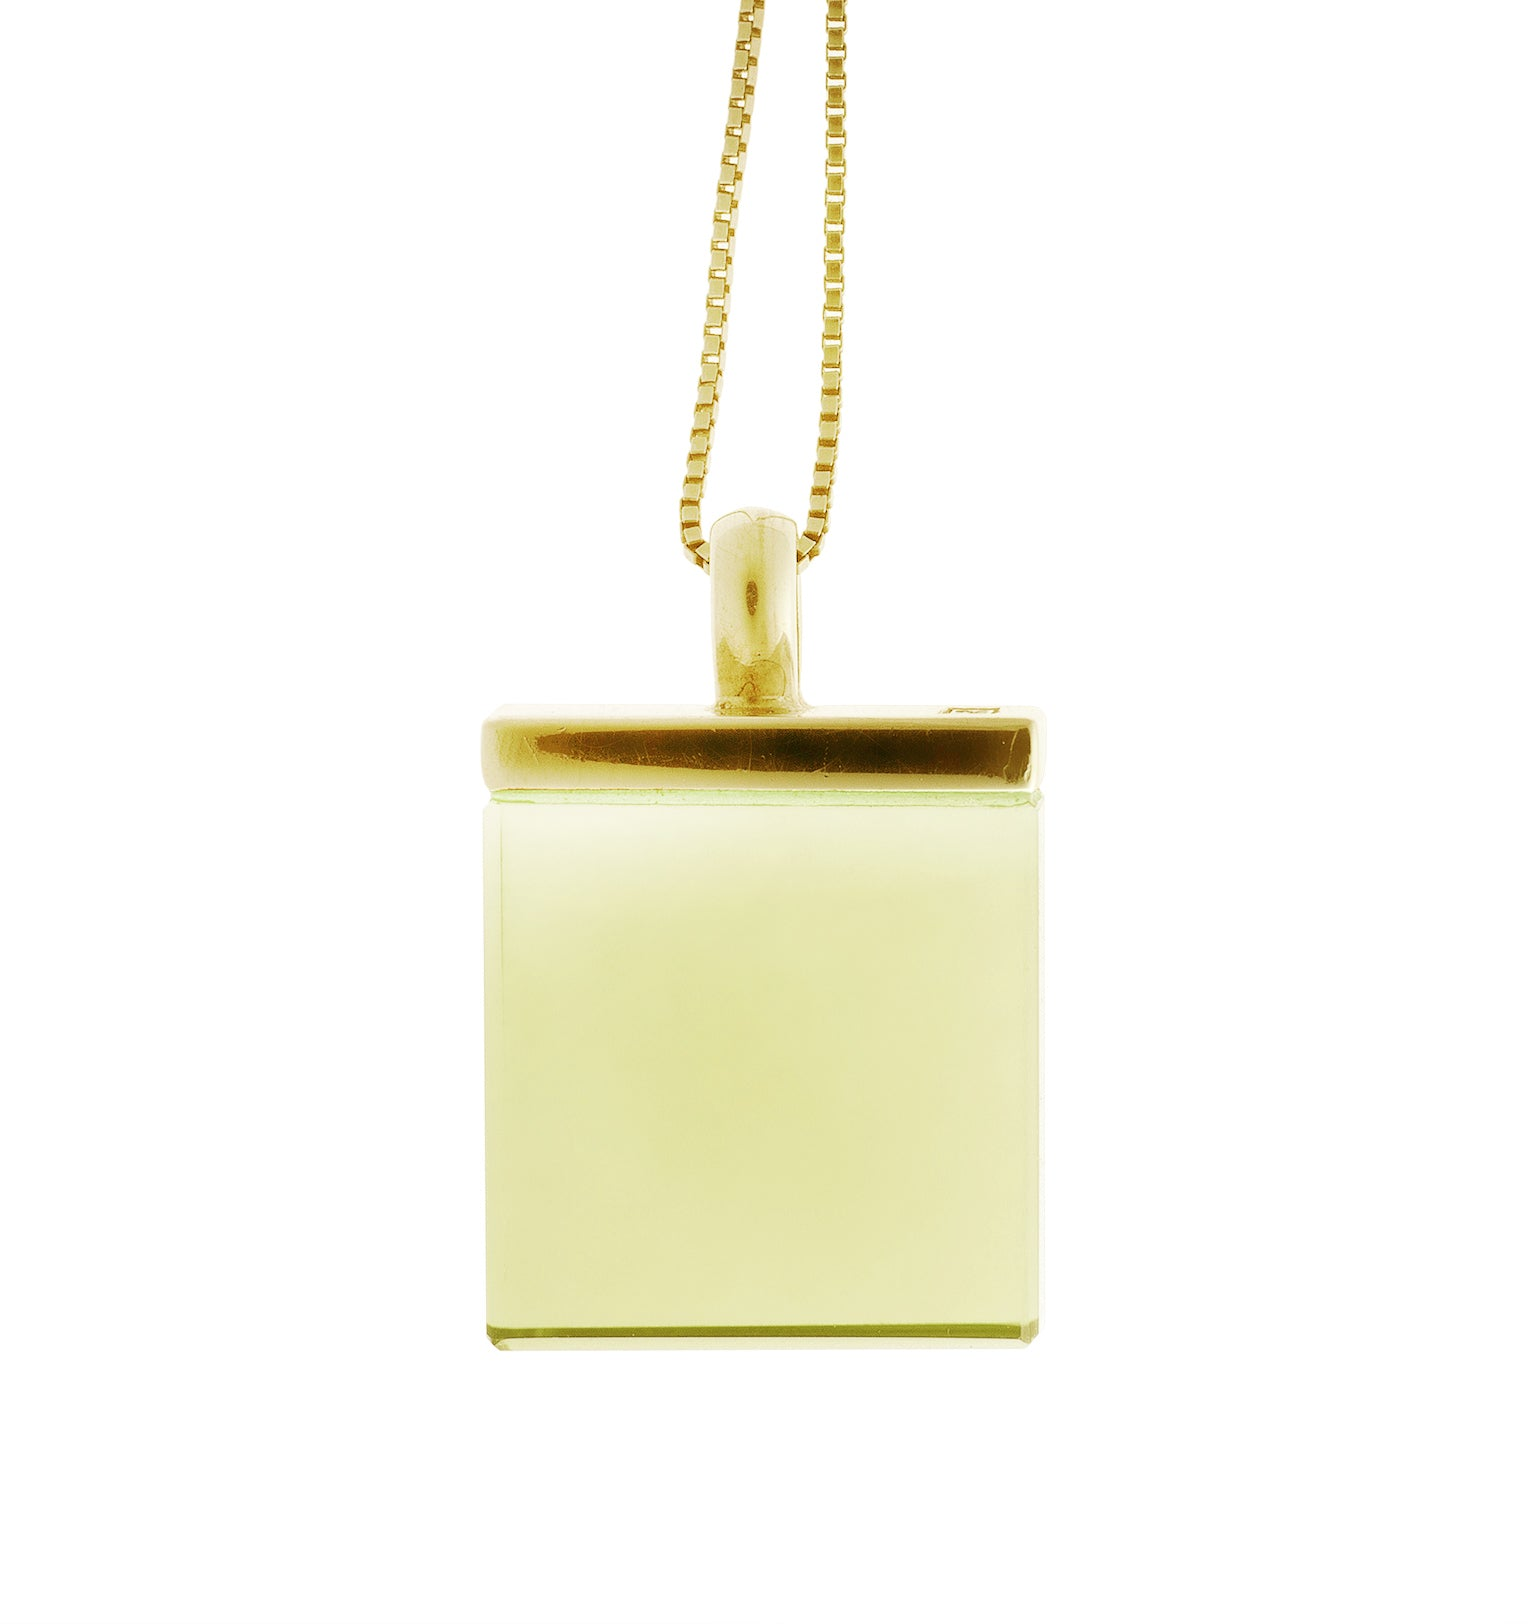 18 Karat Yellow Gold Designer Pendant with Lemon Quartz, featured in Vogue UA